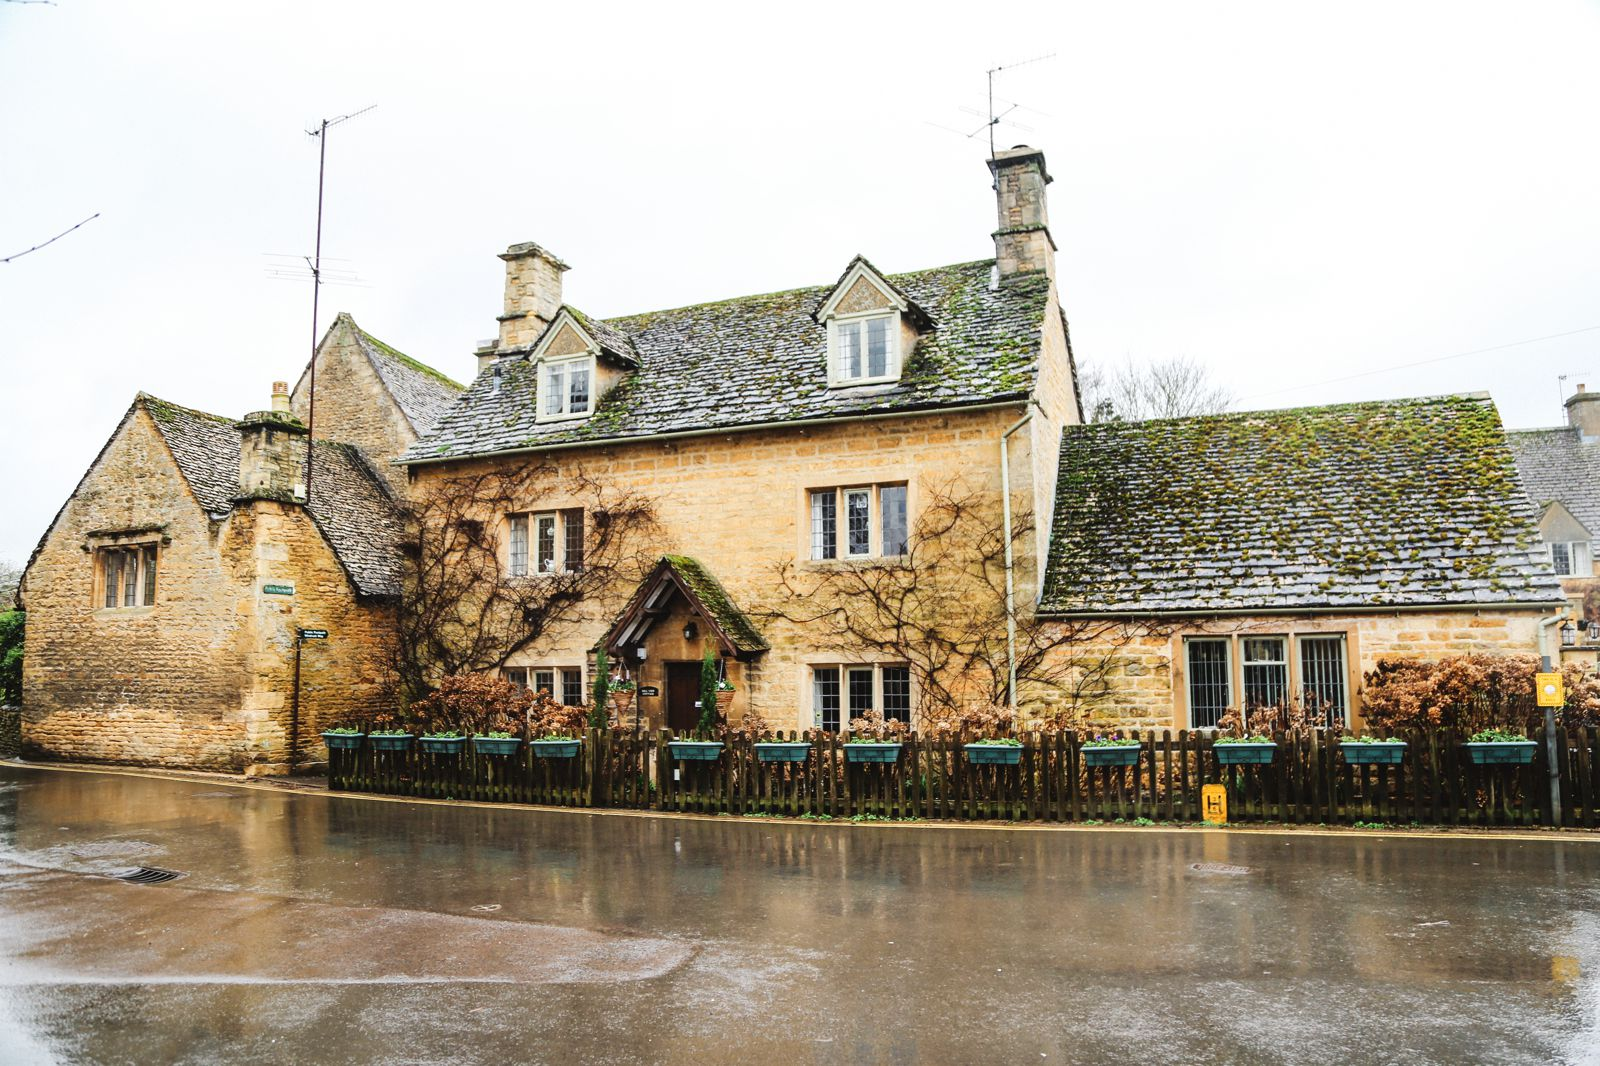 Rainy Days In The English Countryside... The Wood Norton, Bourton-On-The-Water, Broadway, Cotswolds, Stow-on-the-wold (9)